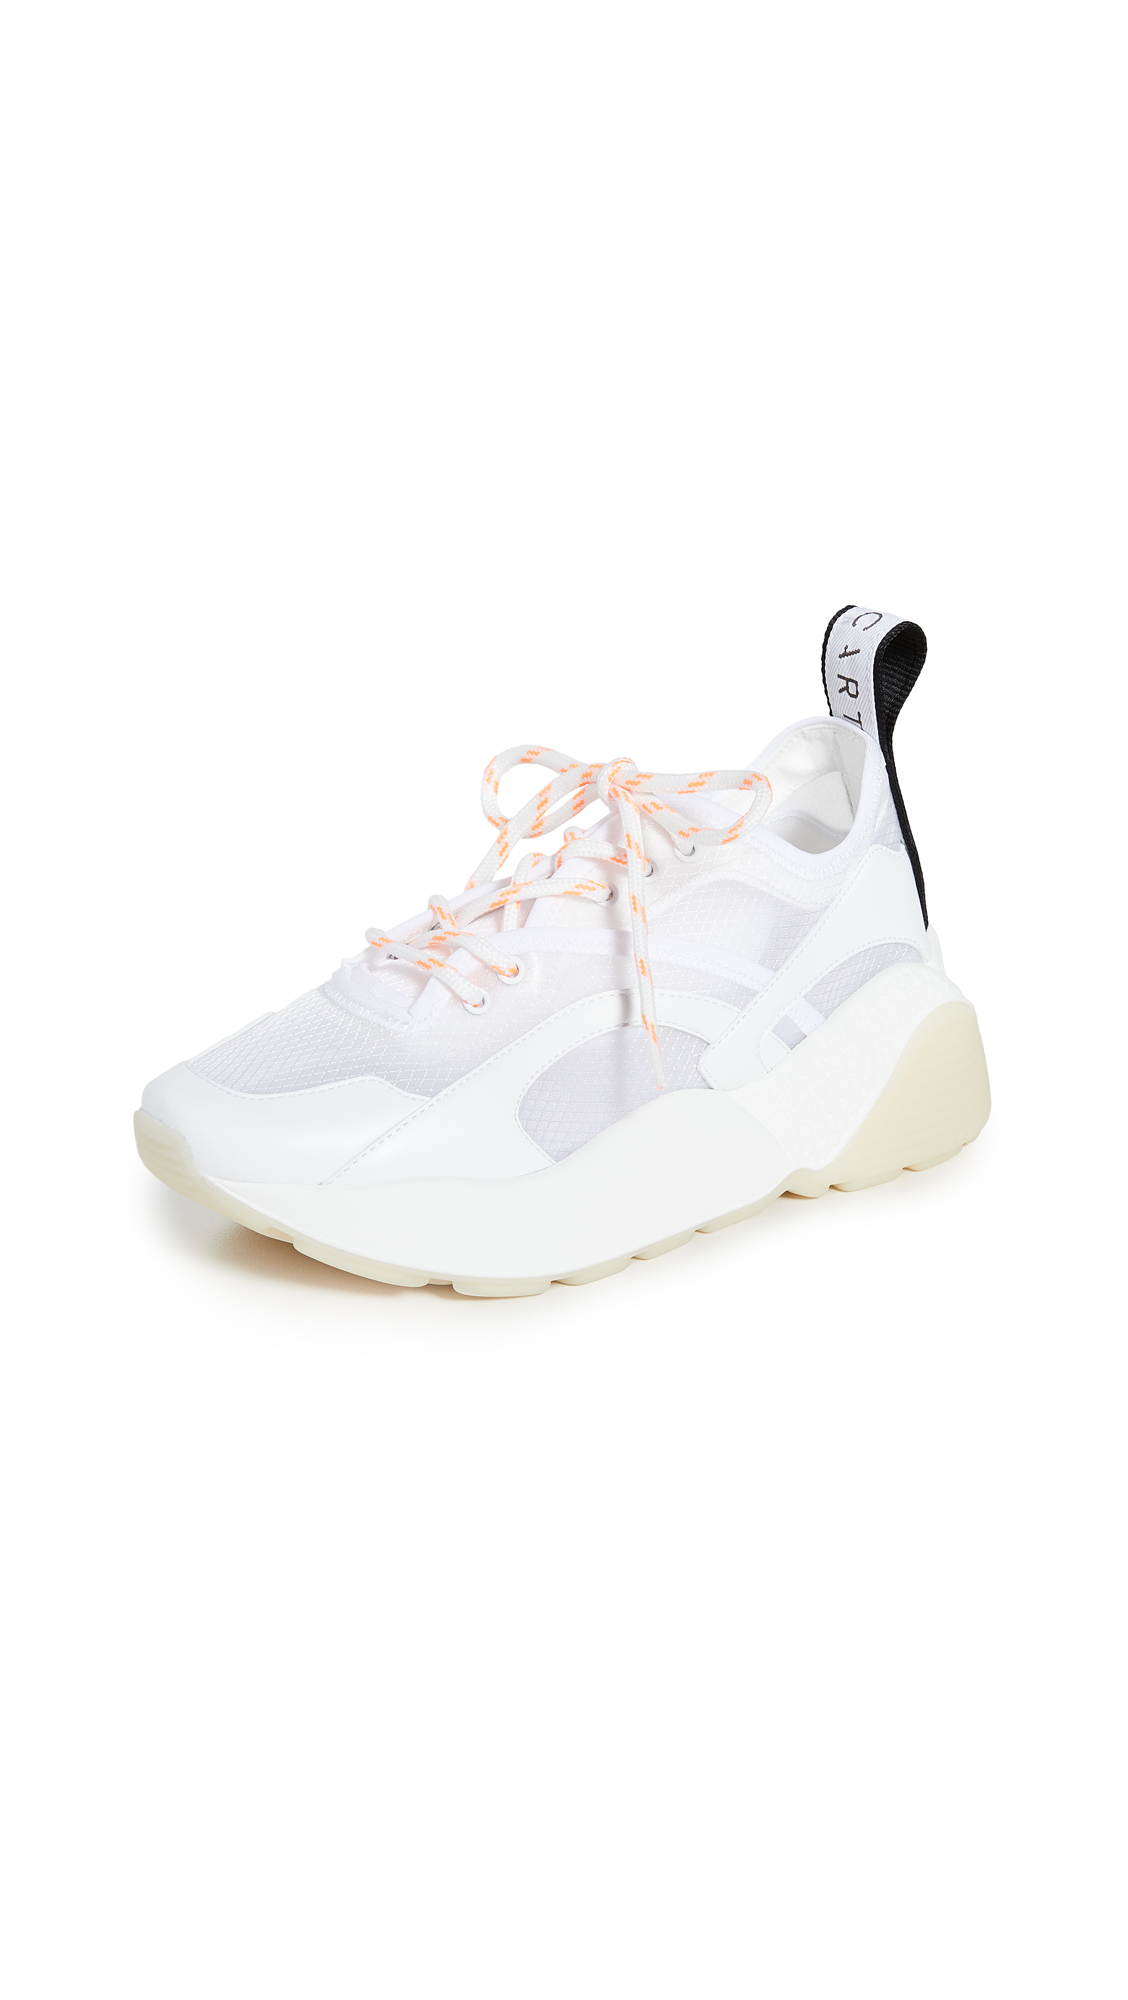 Buy Stella McCartney Eclypse Lace Up Sneakers online, shop Stella McCartney